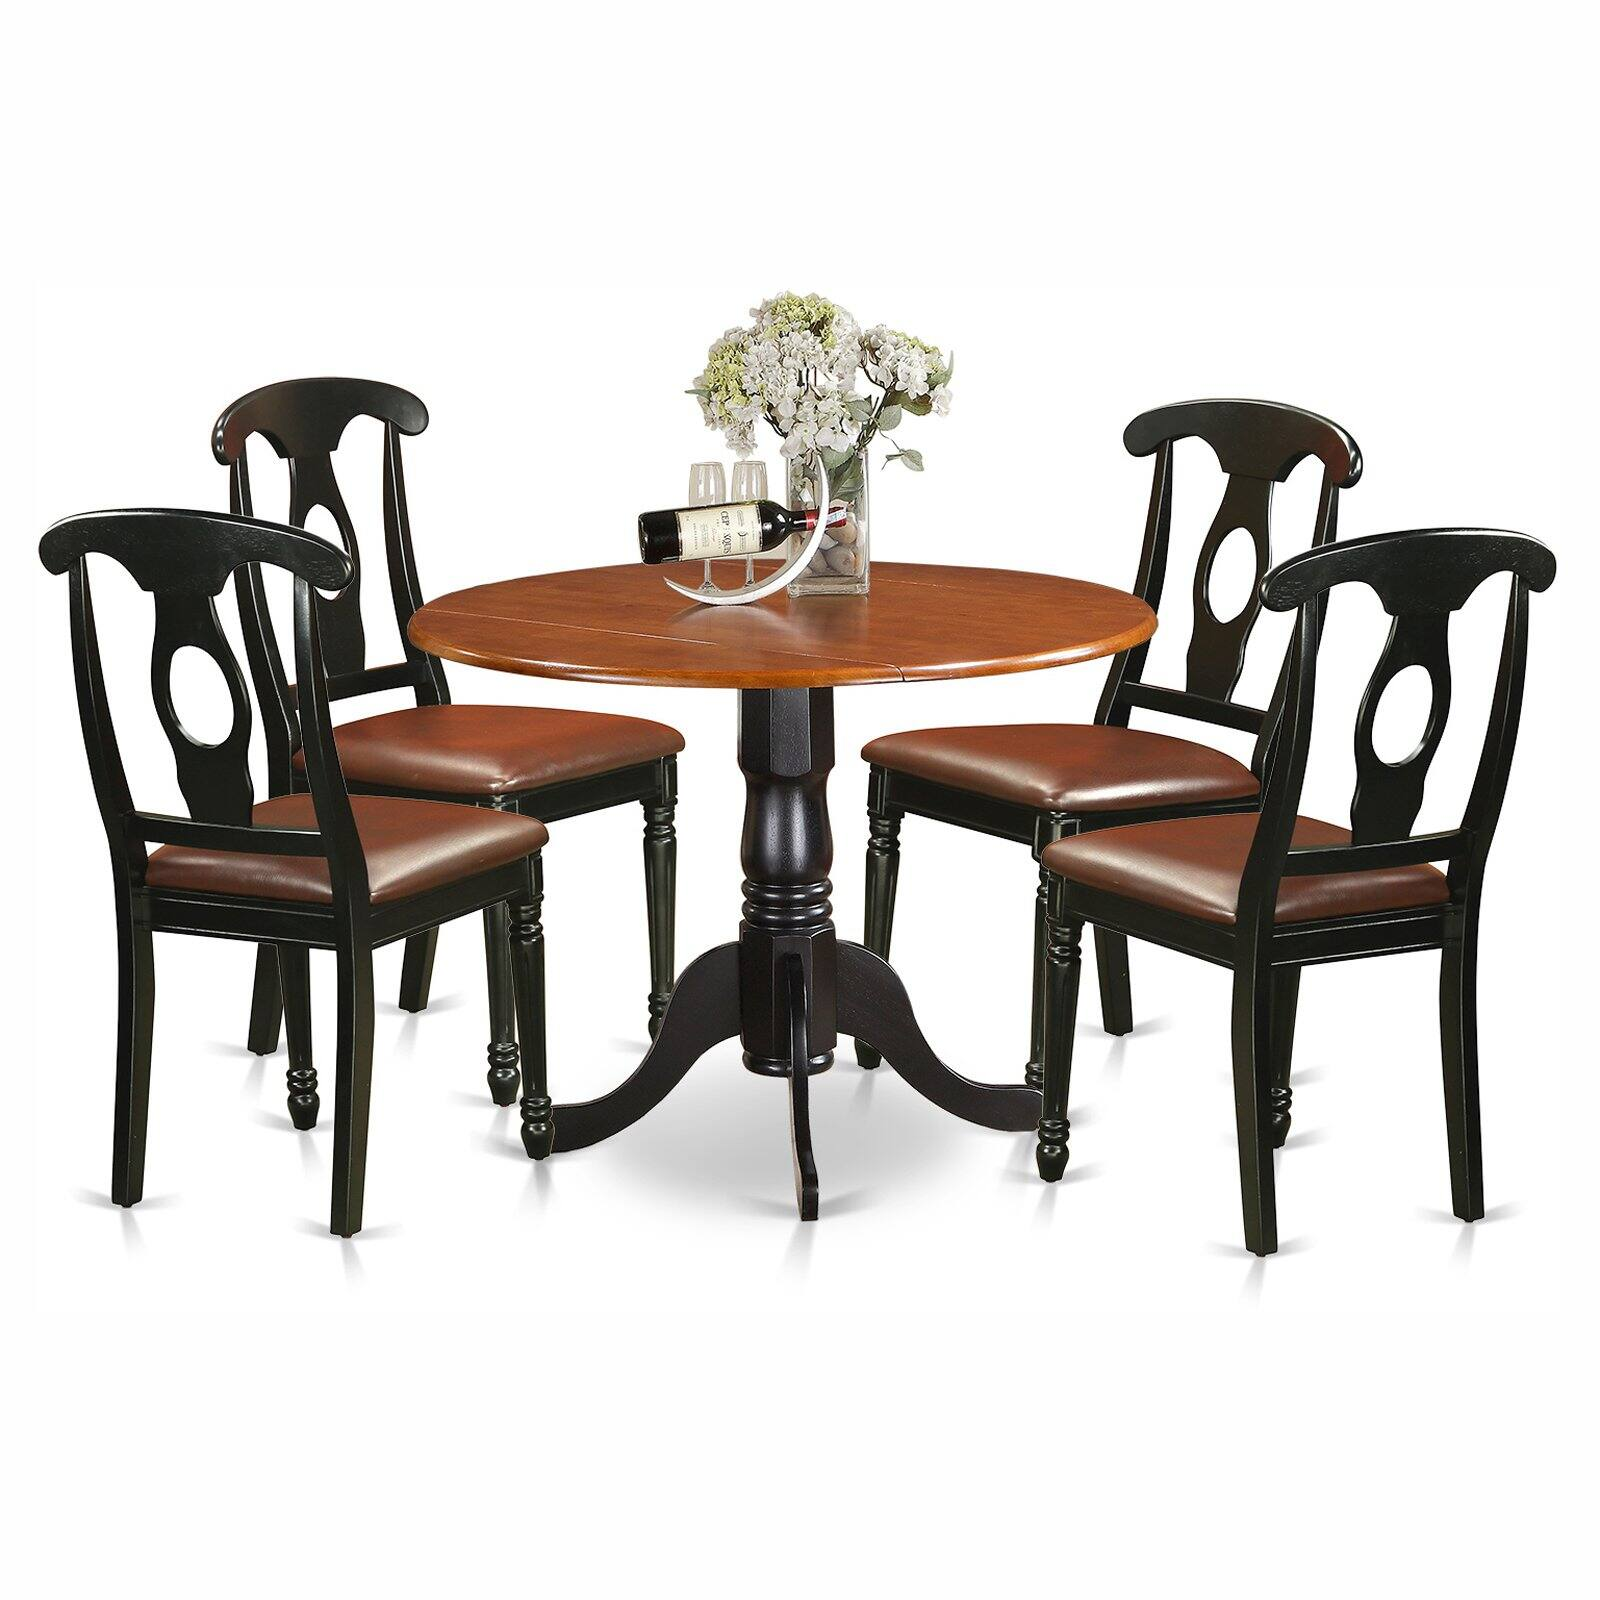 East West Furniture Dublin 5 Piece Drop Leaf Dining Table Set With Kenley Faux Leather Seat Chairs Walmart Com Walmart Com